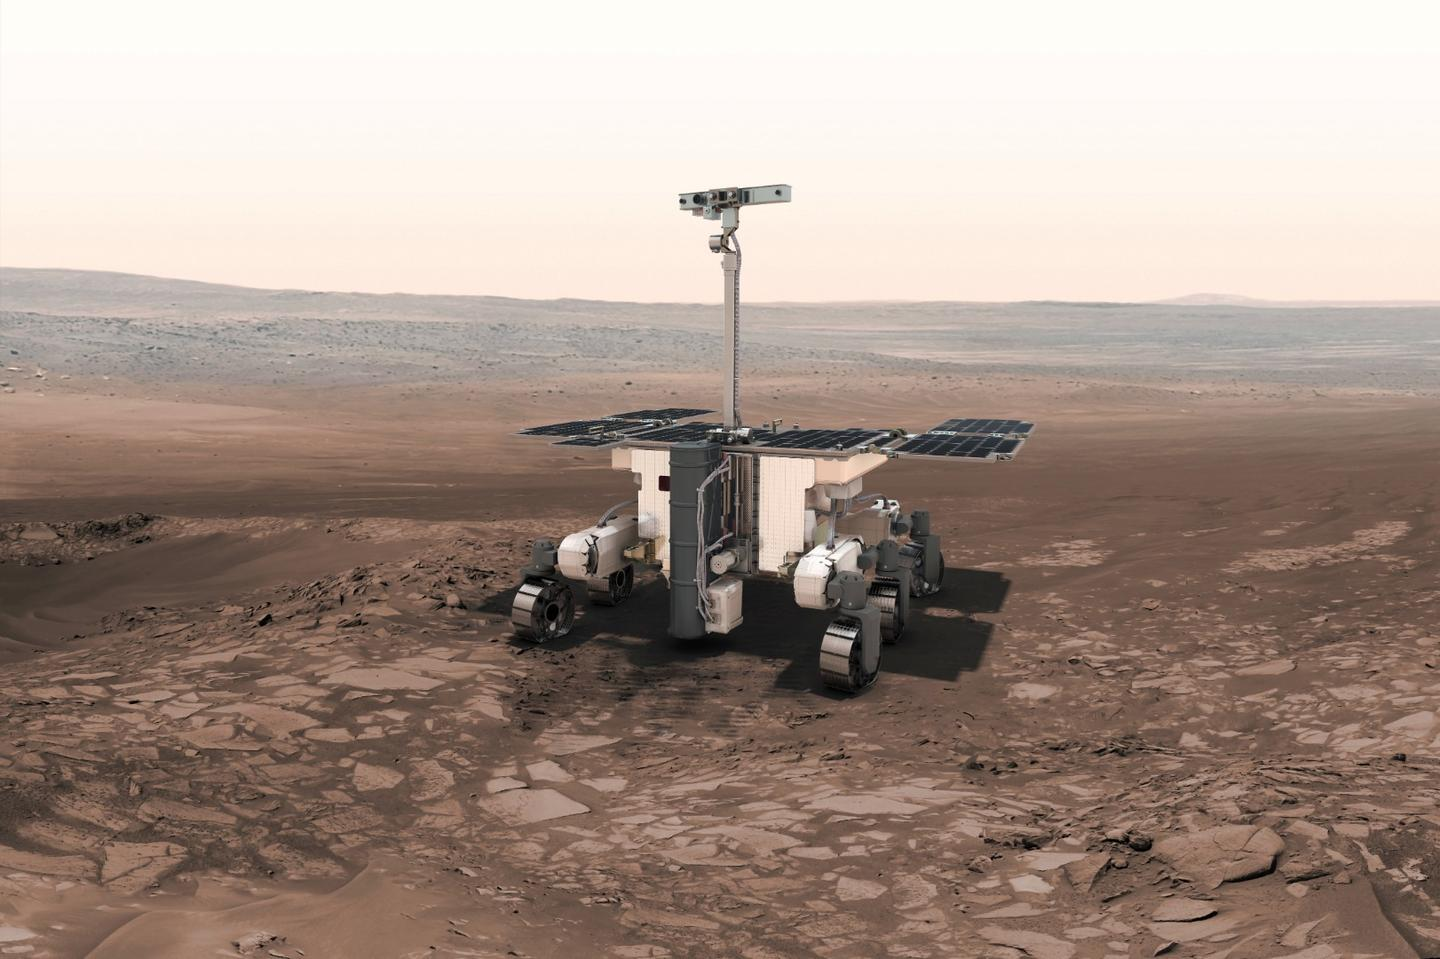 Render of the ExoMars 2020 rover on Mars